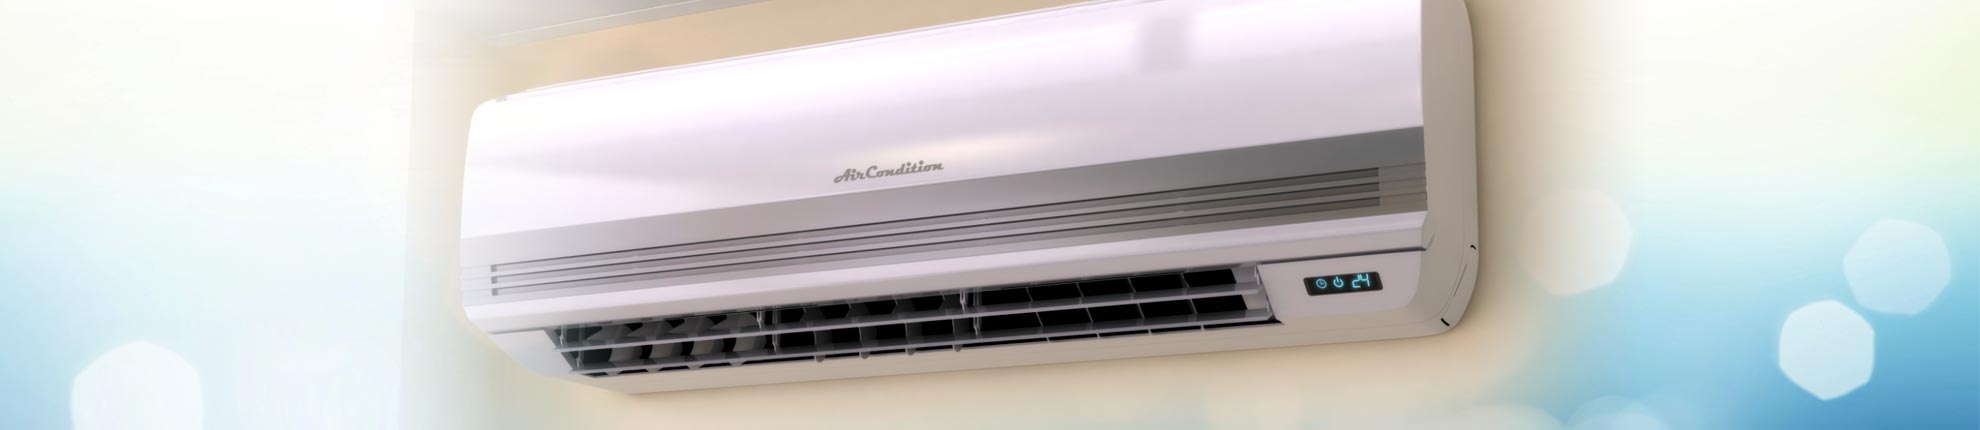 Coolrite air conditioning split system